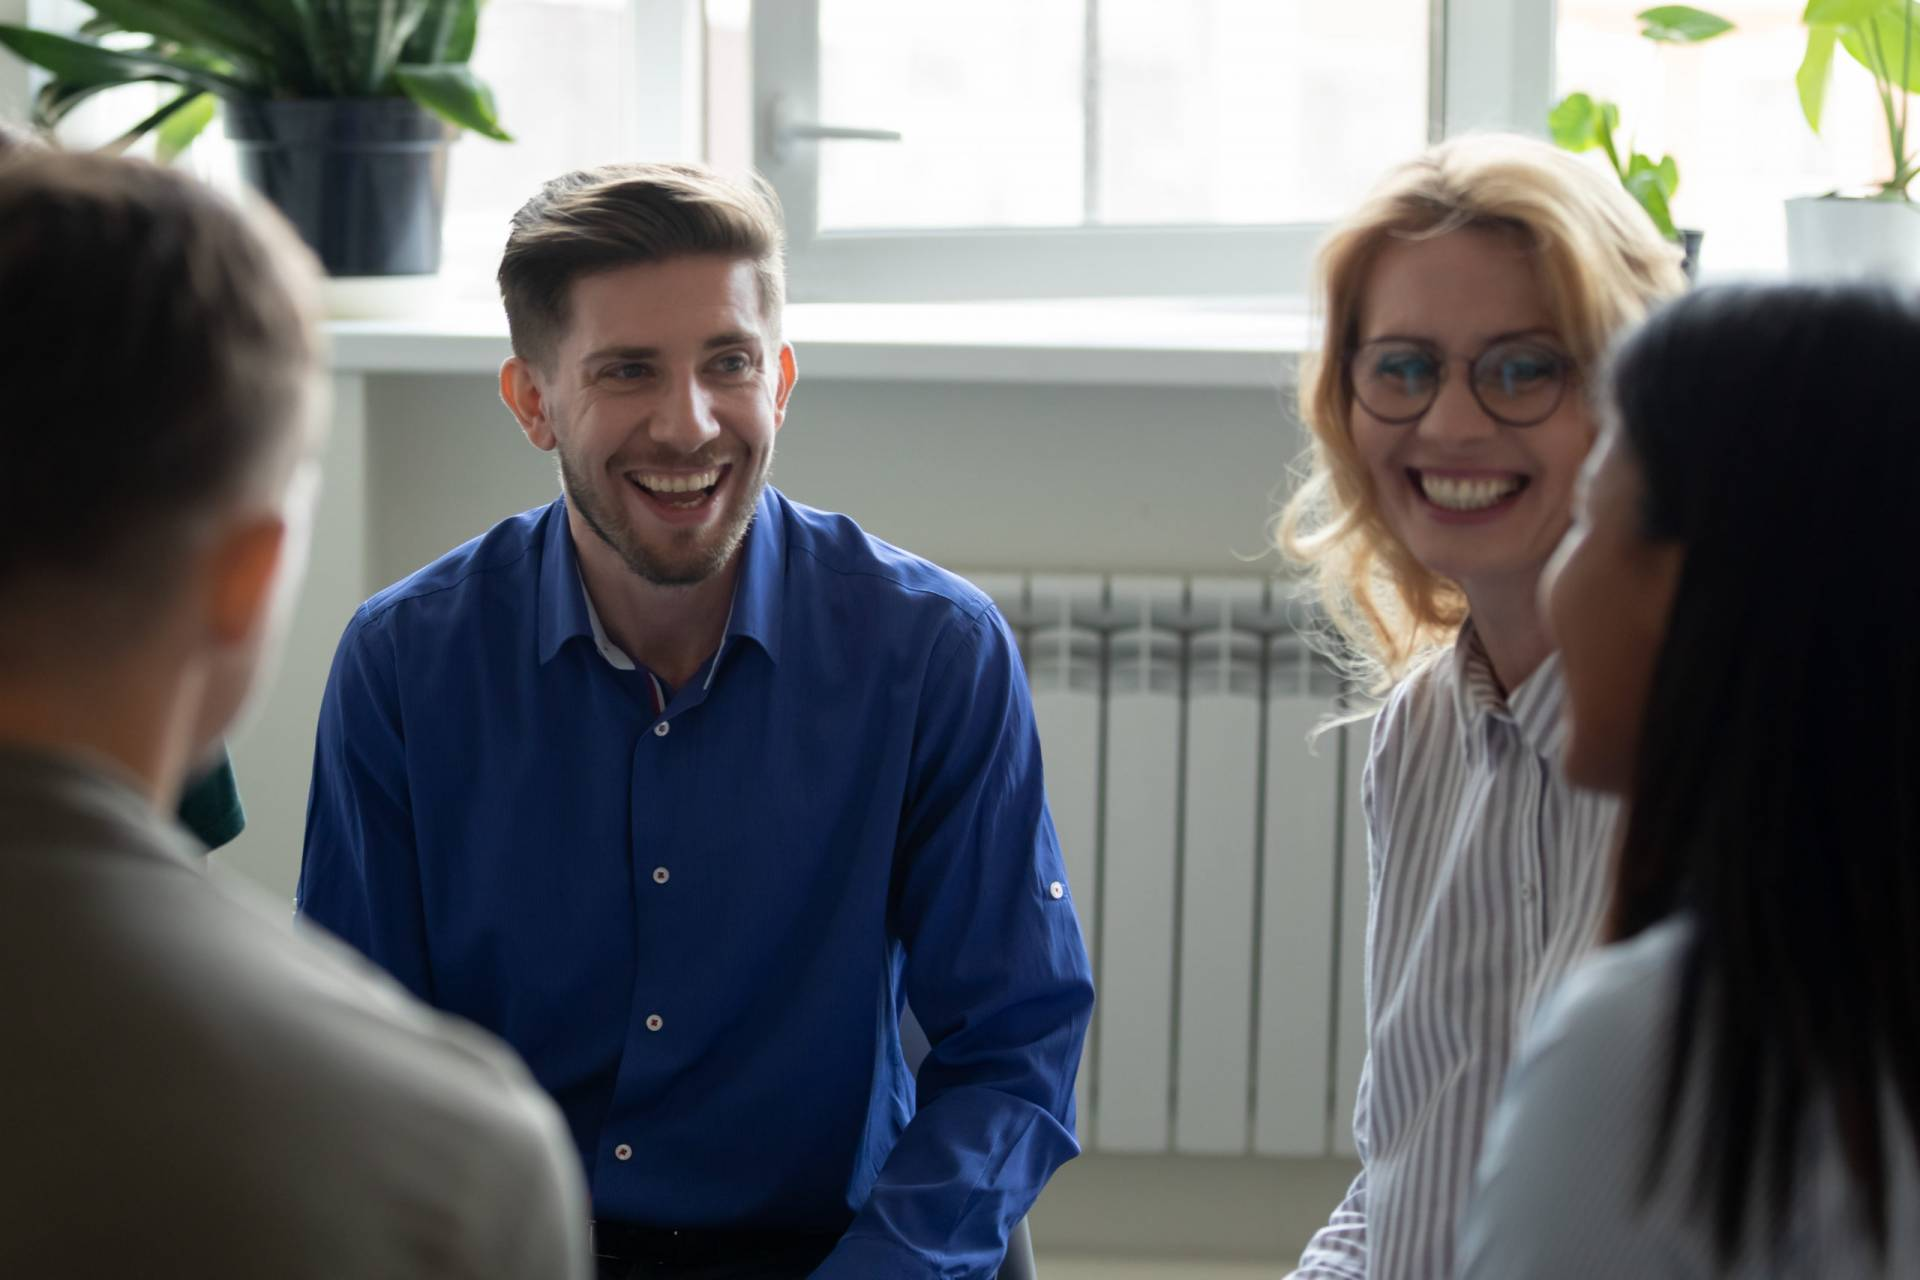 Overjoyed diverse people have fun engaged in team therapy indoors